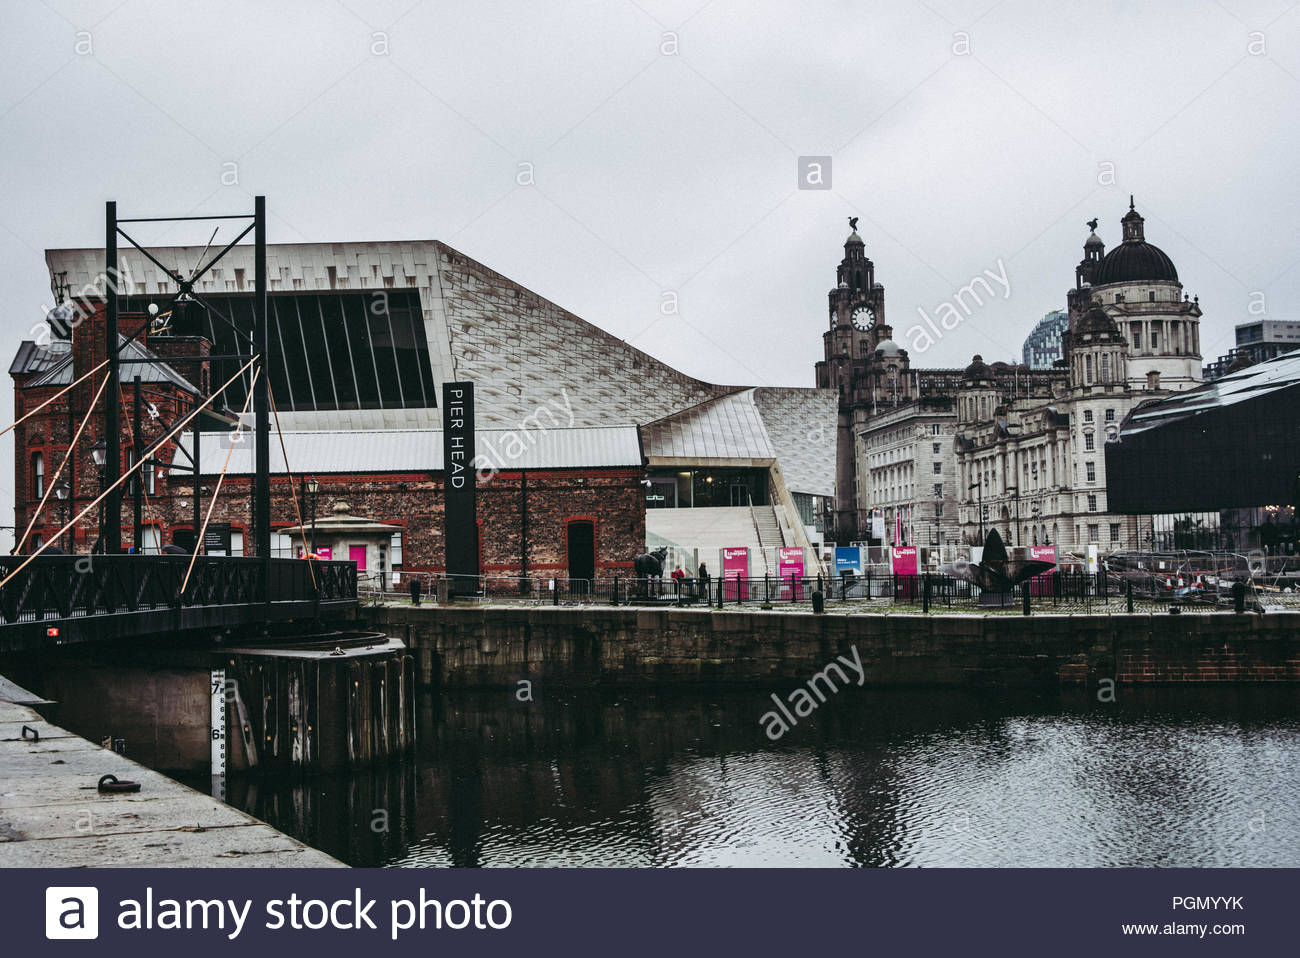 England, LIVERPOOL: some pictures of the city along the Albert Docks with all the museums, the Liverpool Cathedral and some important Beatles' s spot - Stock Image